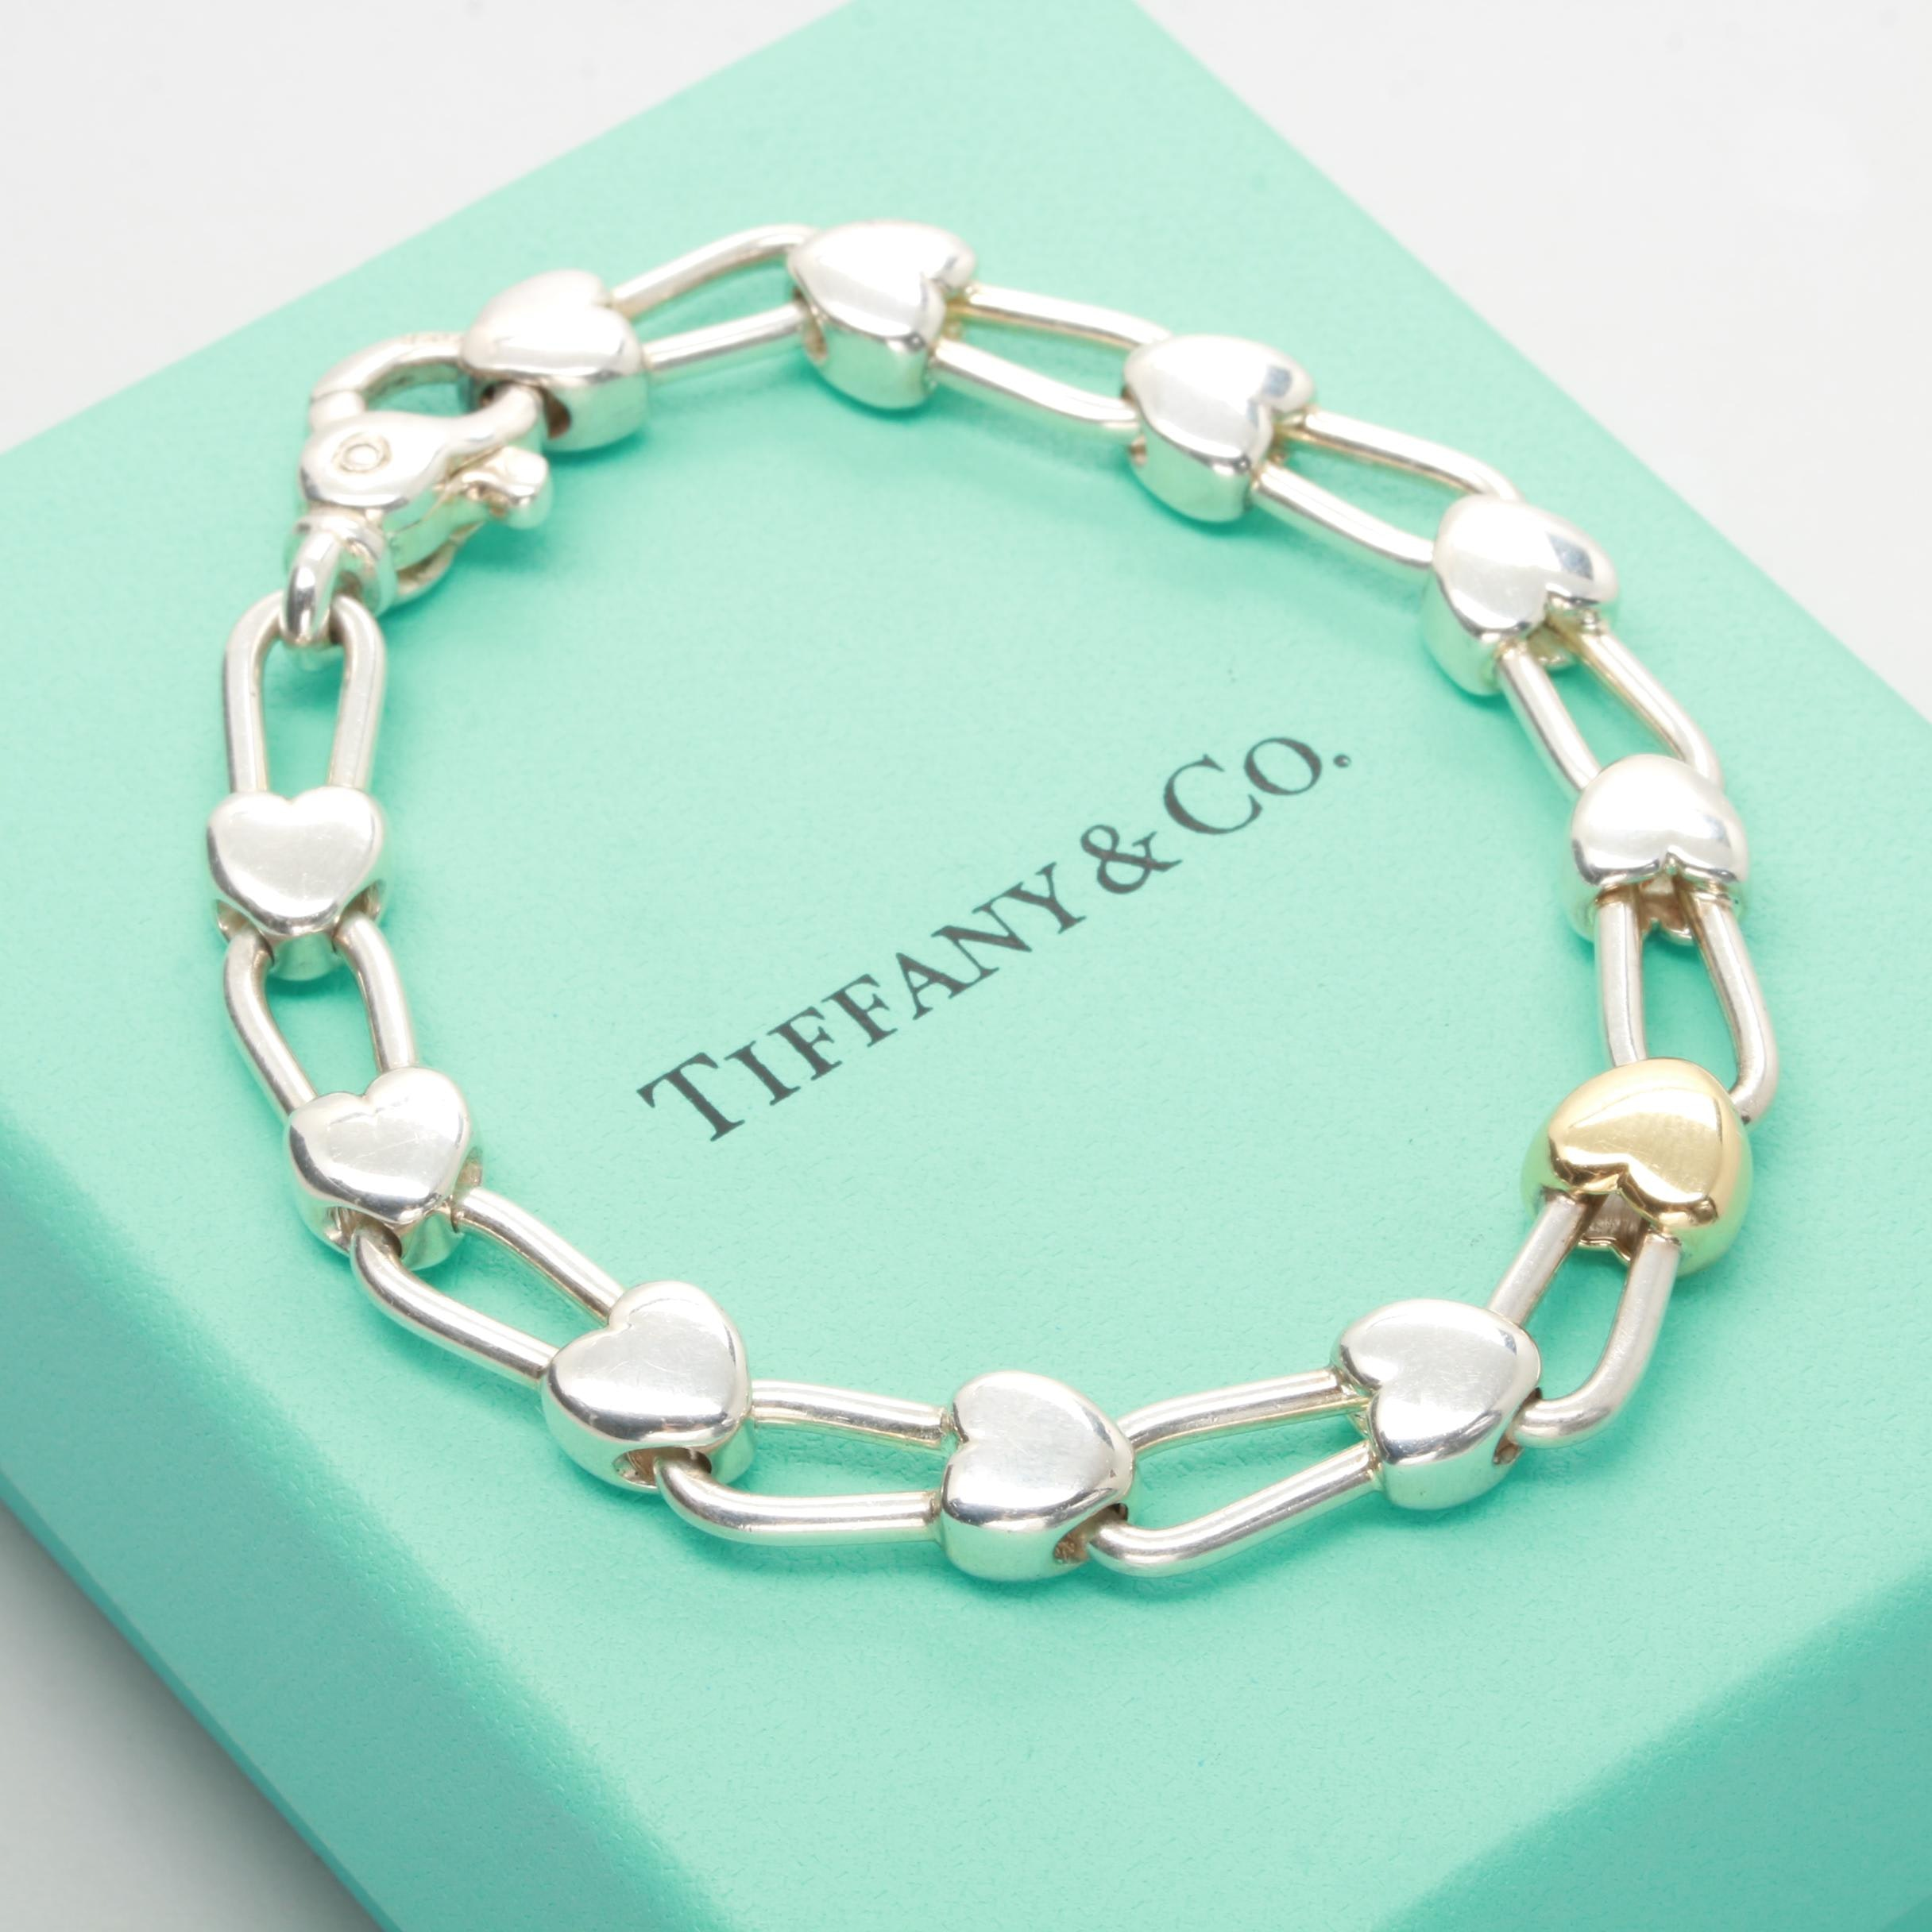 Tiffany & Co. Sterling Silver and 18K  Yellow Gold Heart Motif Bracelet